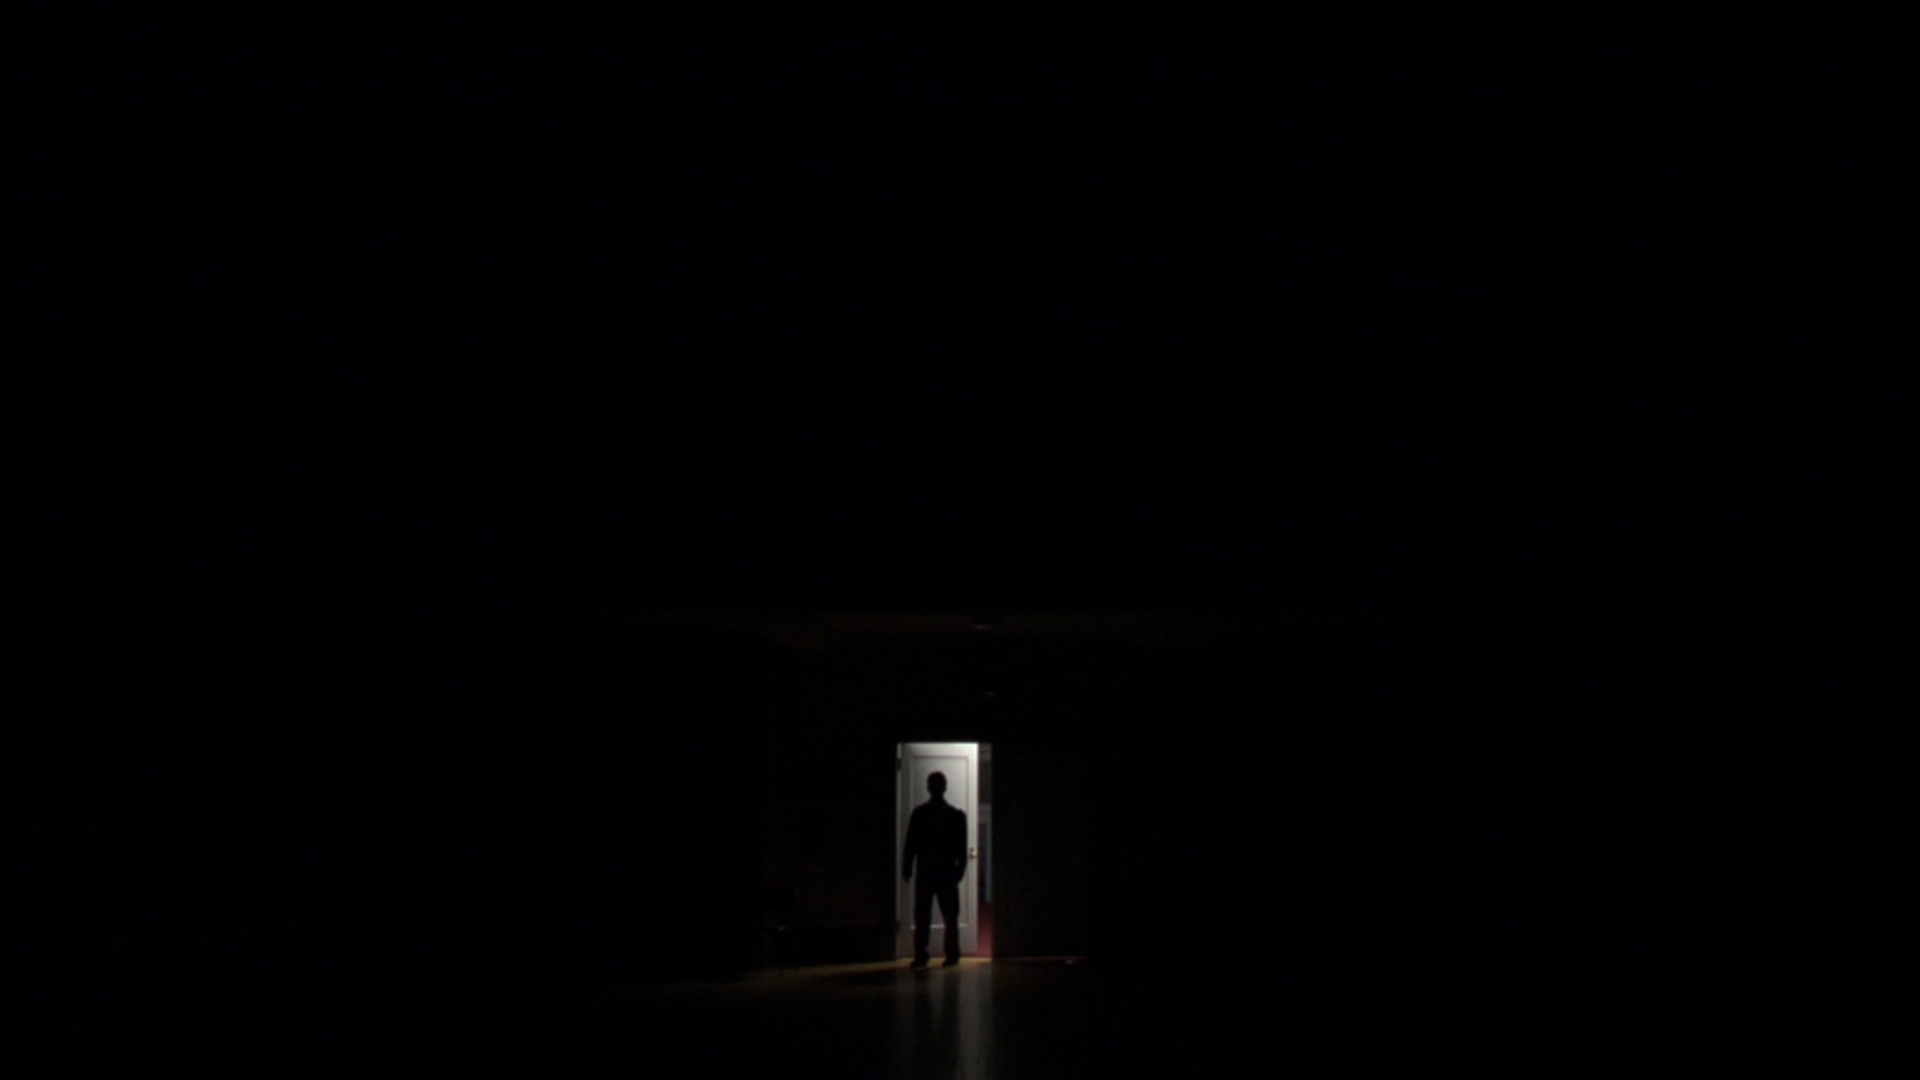 Dark Room with Person